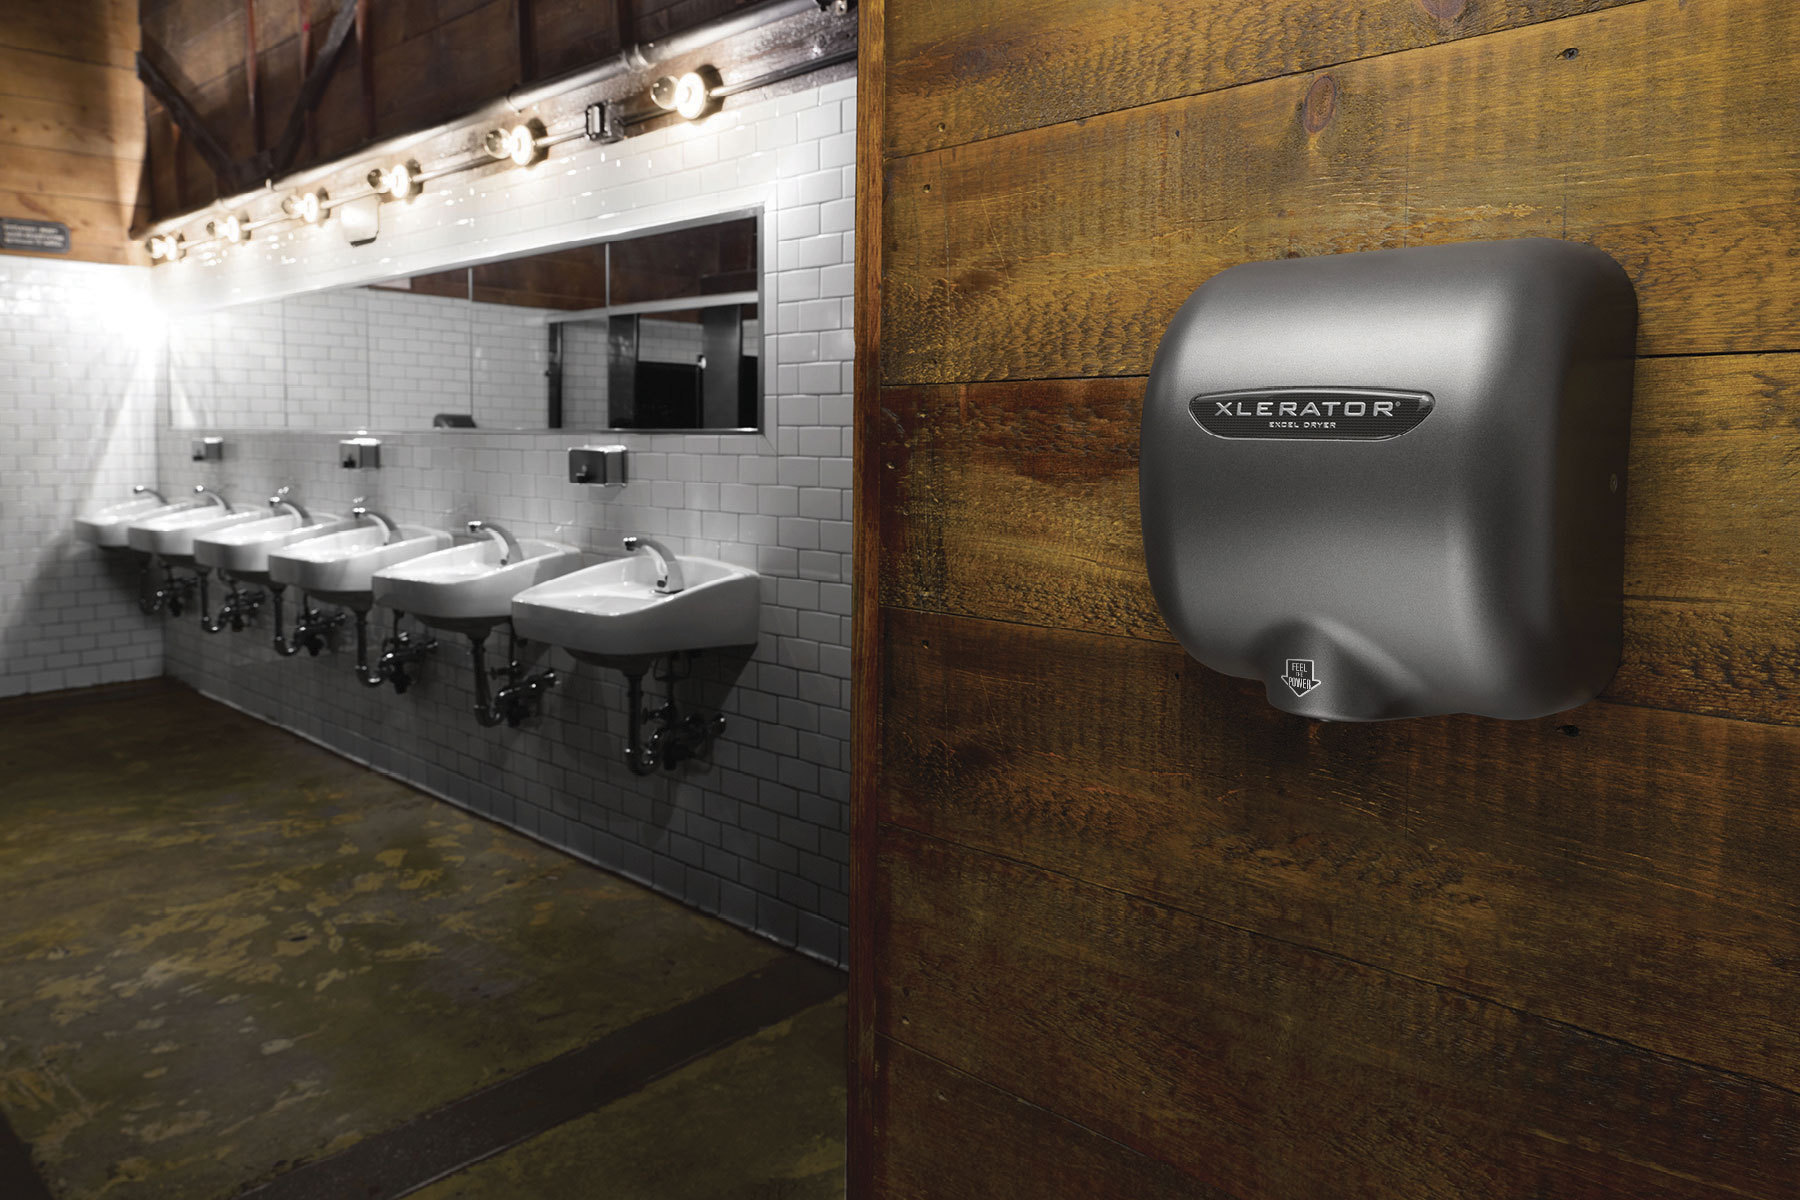 xlerator hand dryer demire agdiffusion com xlerator hand dryer motor xlerator hand dryers help brooklyn bowl become the first leed